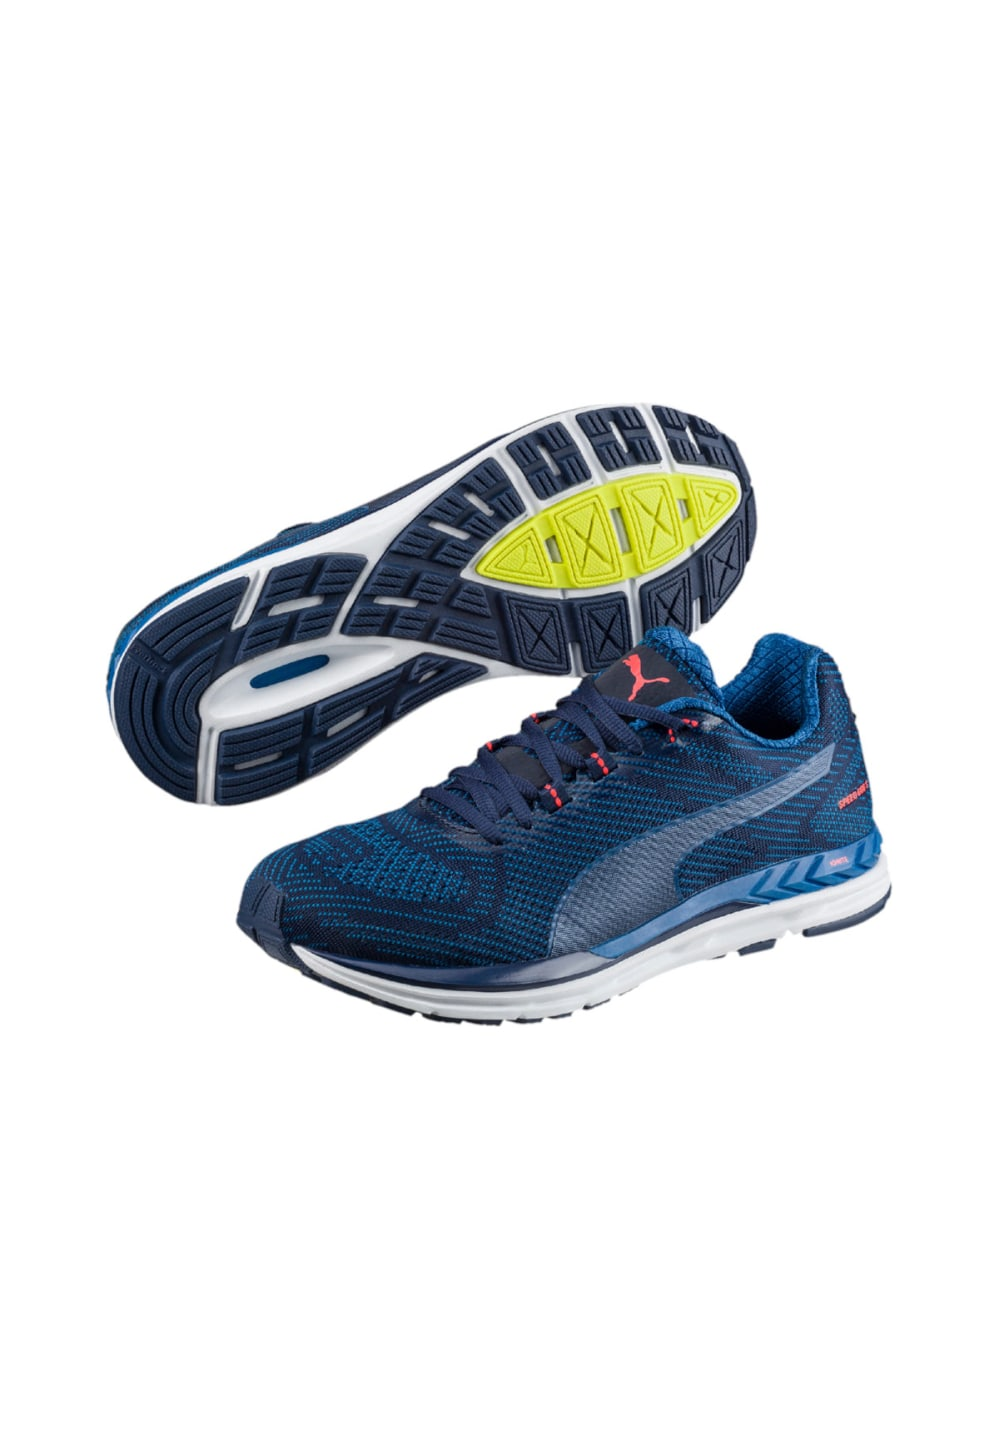 Puma Speed 600 S IGNITE Chaussures running pour Homme Bleu